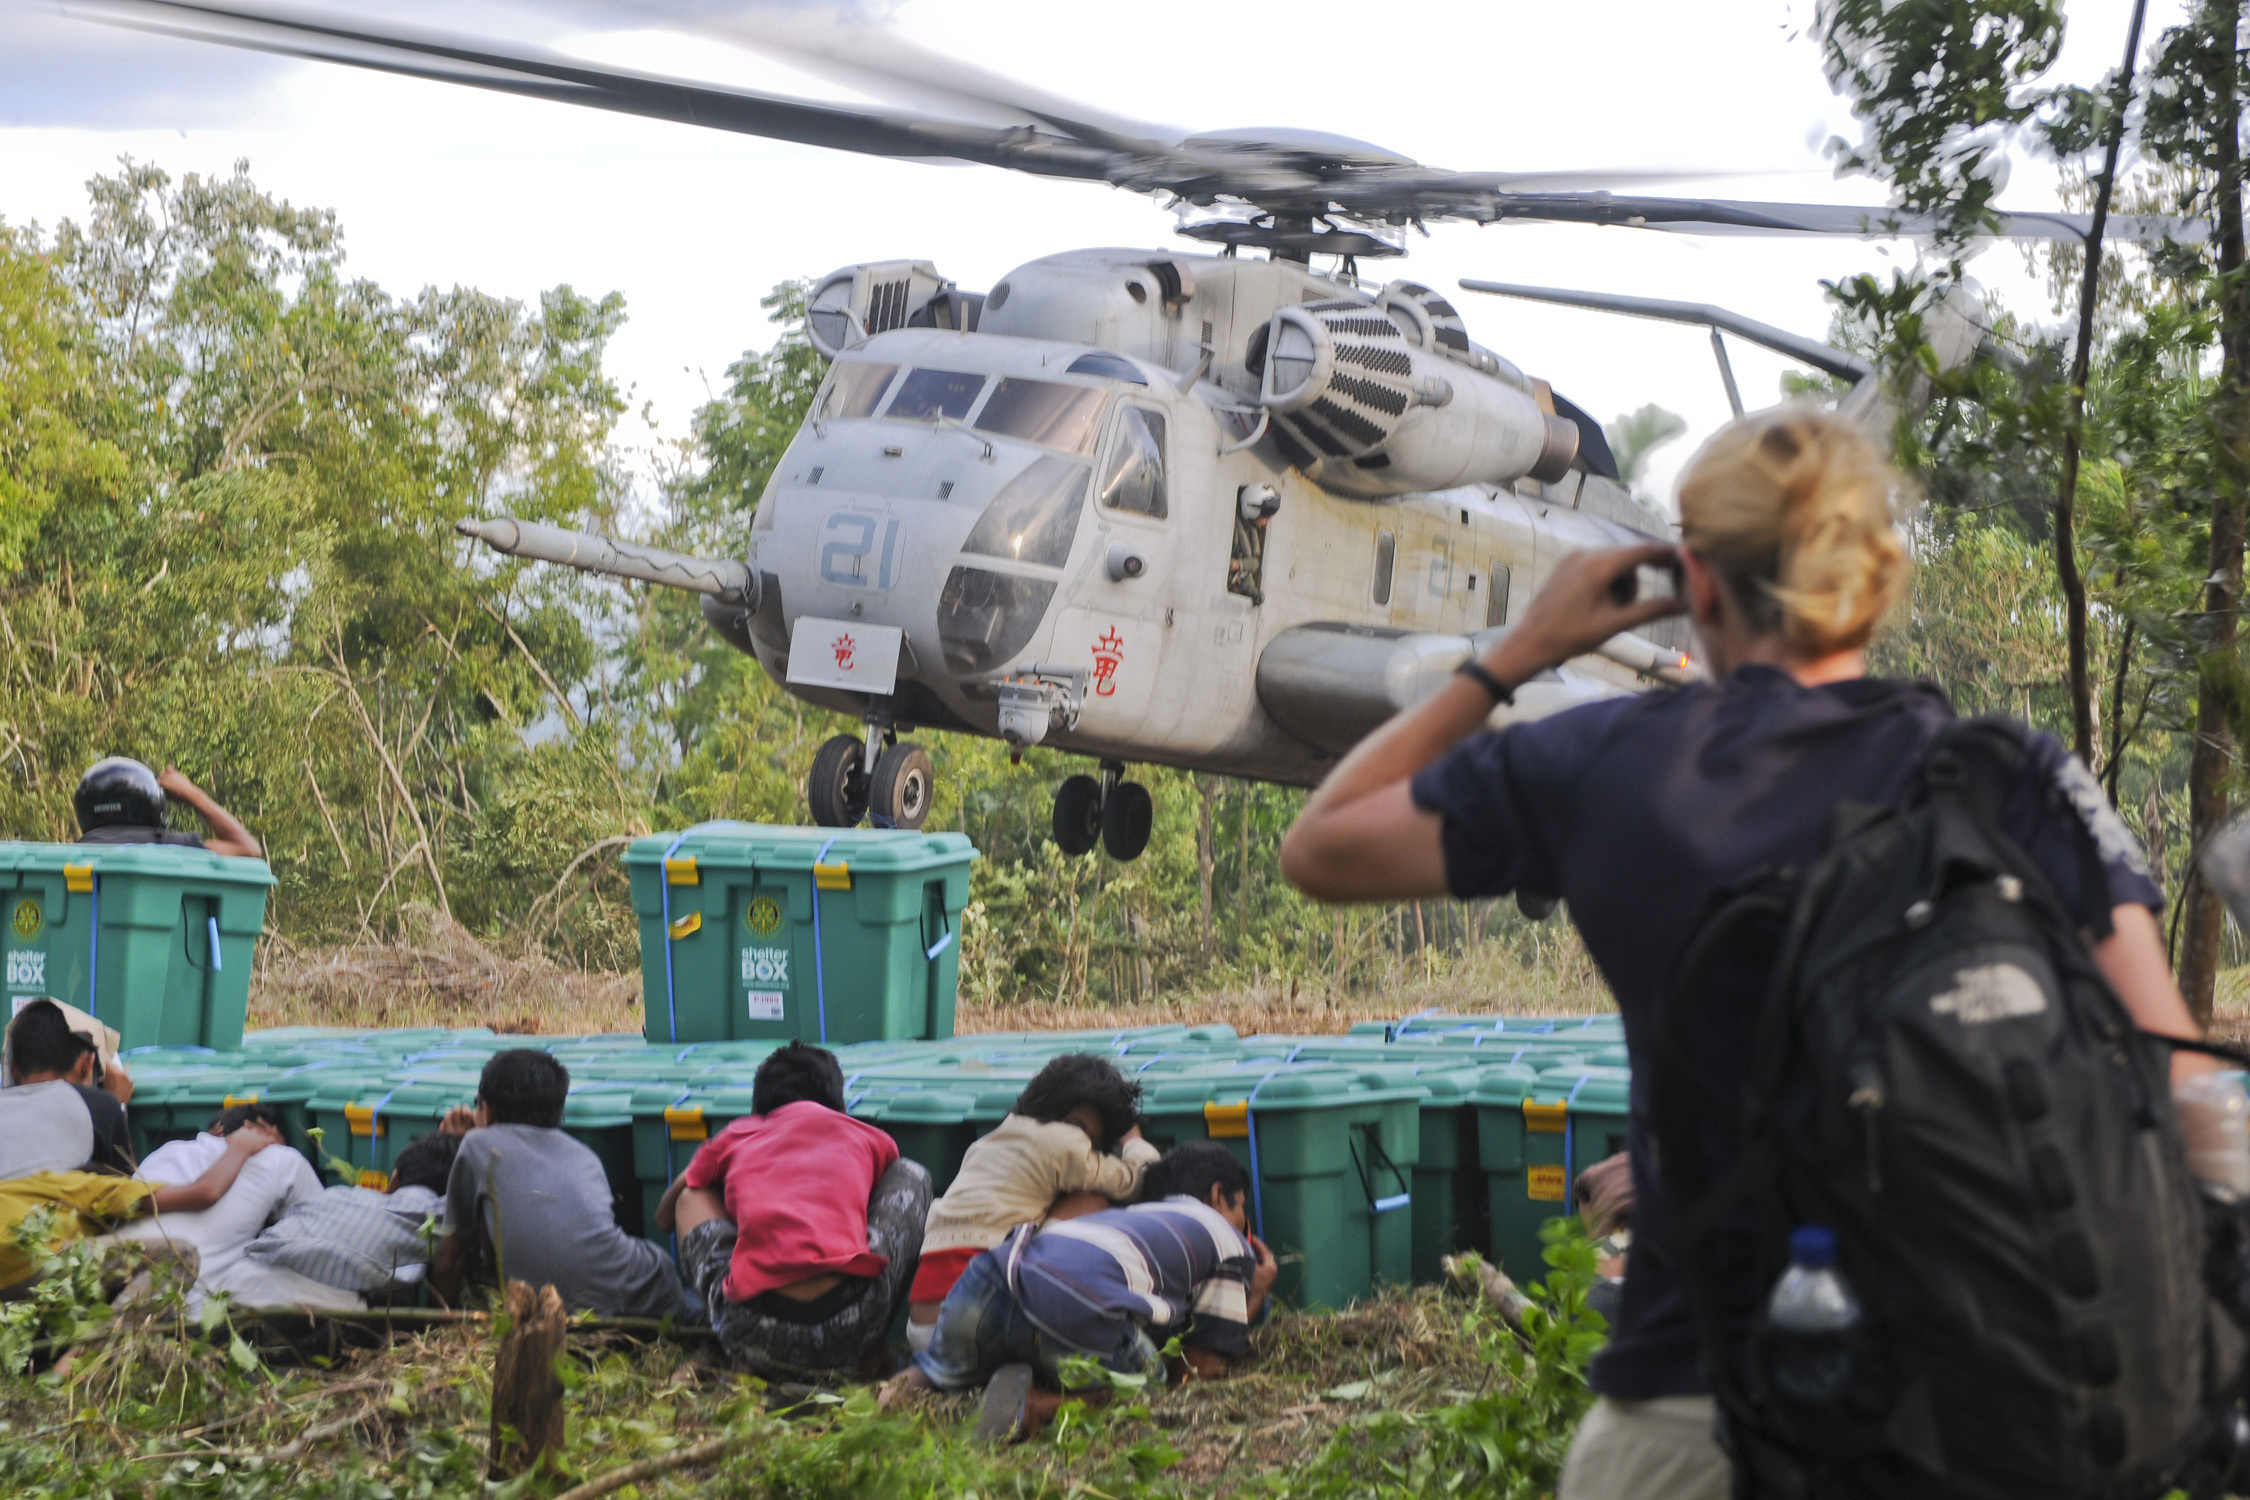 Children taking shelter behind a stack of Shelter boxes as a helicopter lands